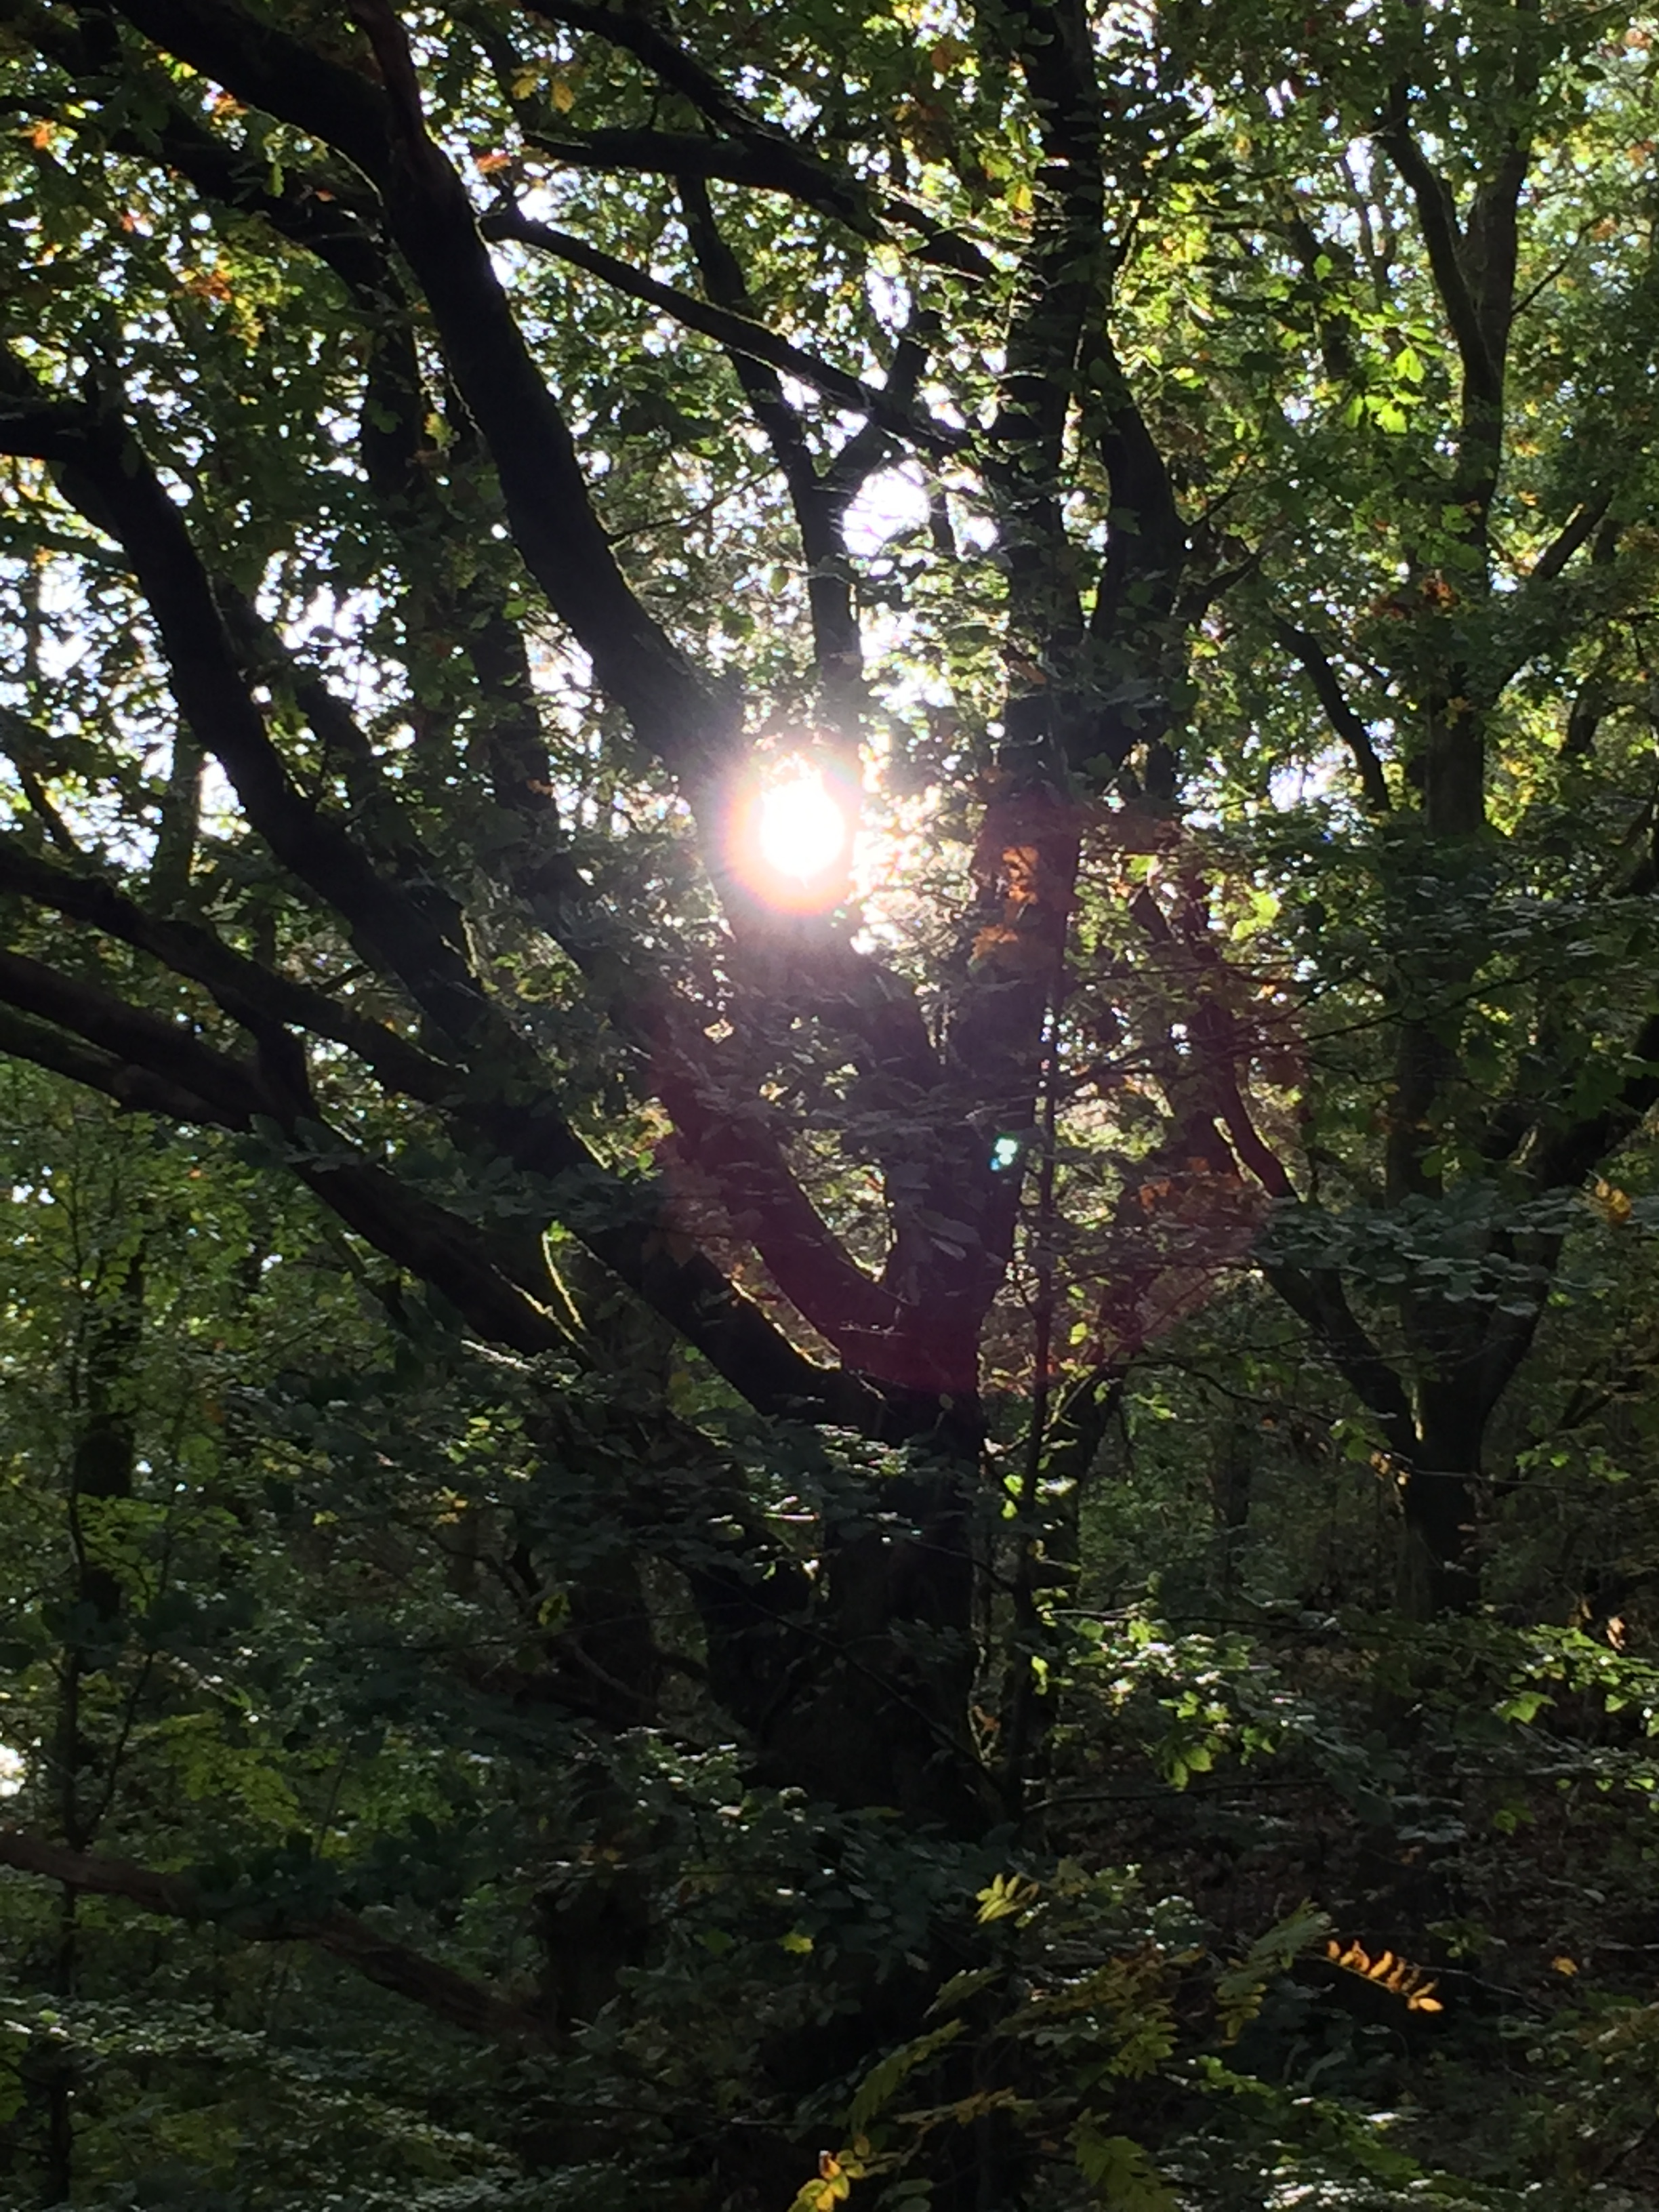 A tree dancing with the sun